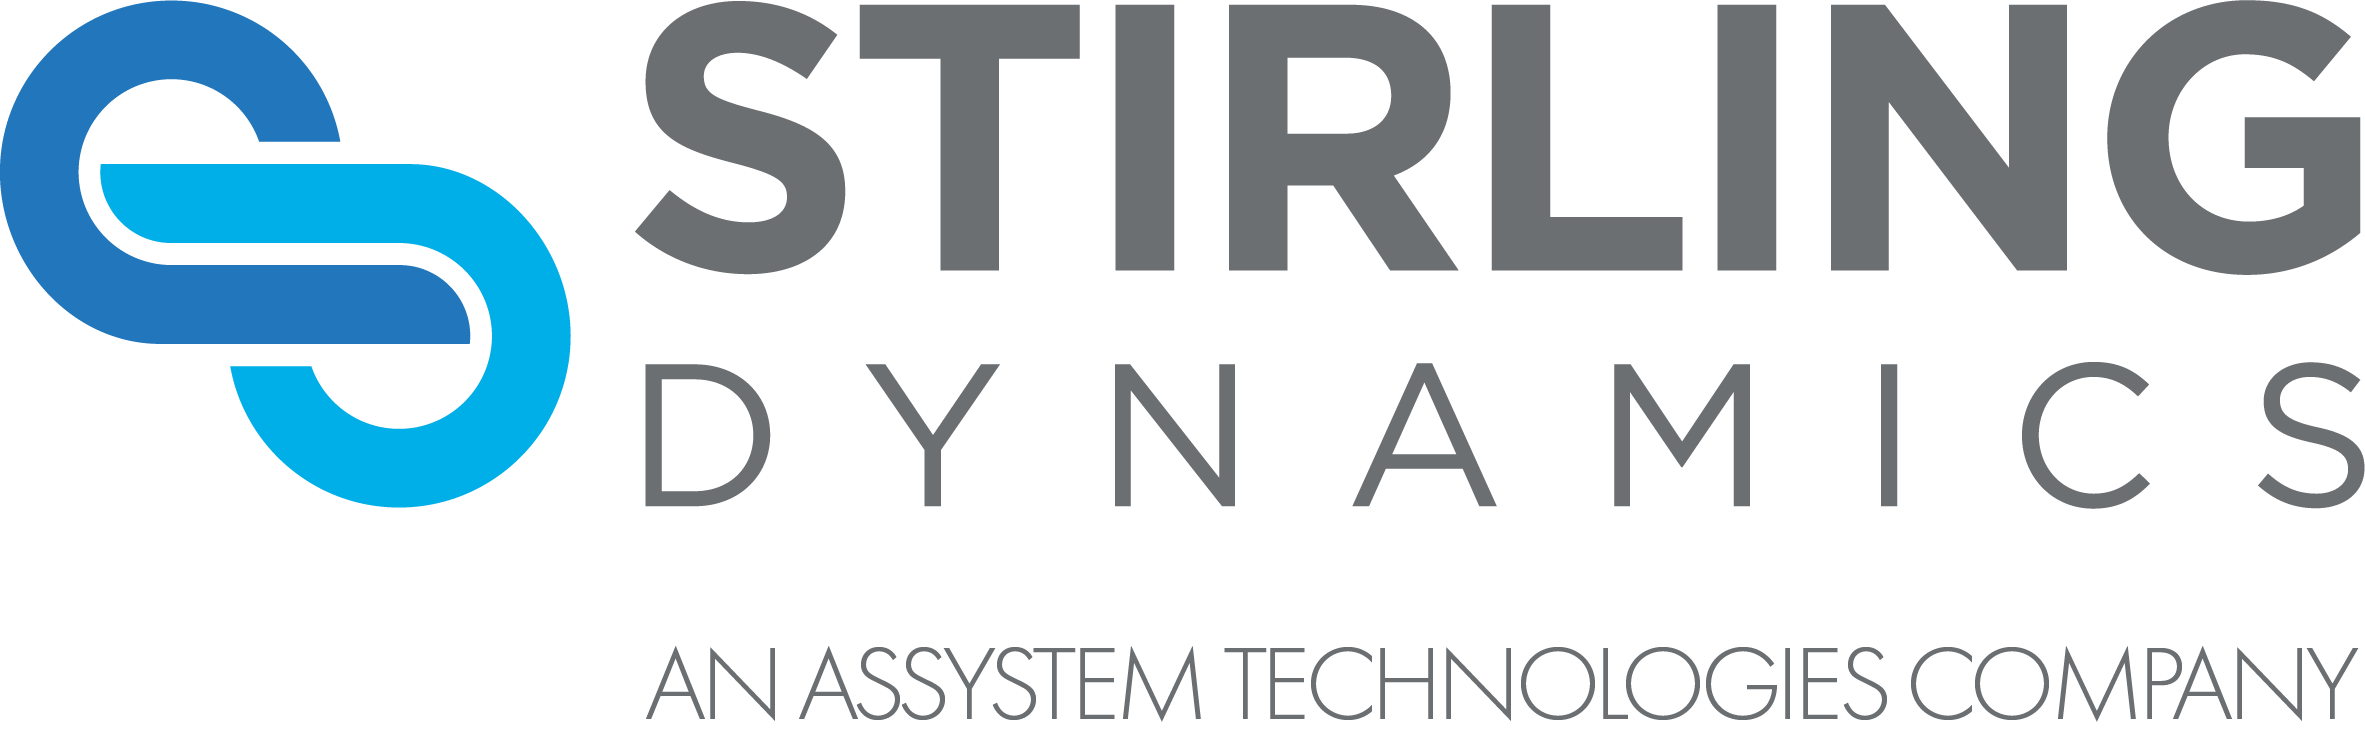 Submarine Control Systems | Stirling Dynamics